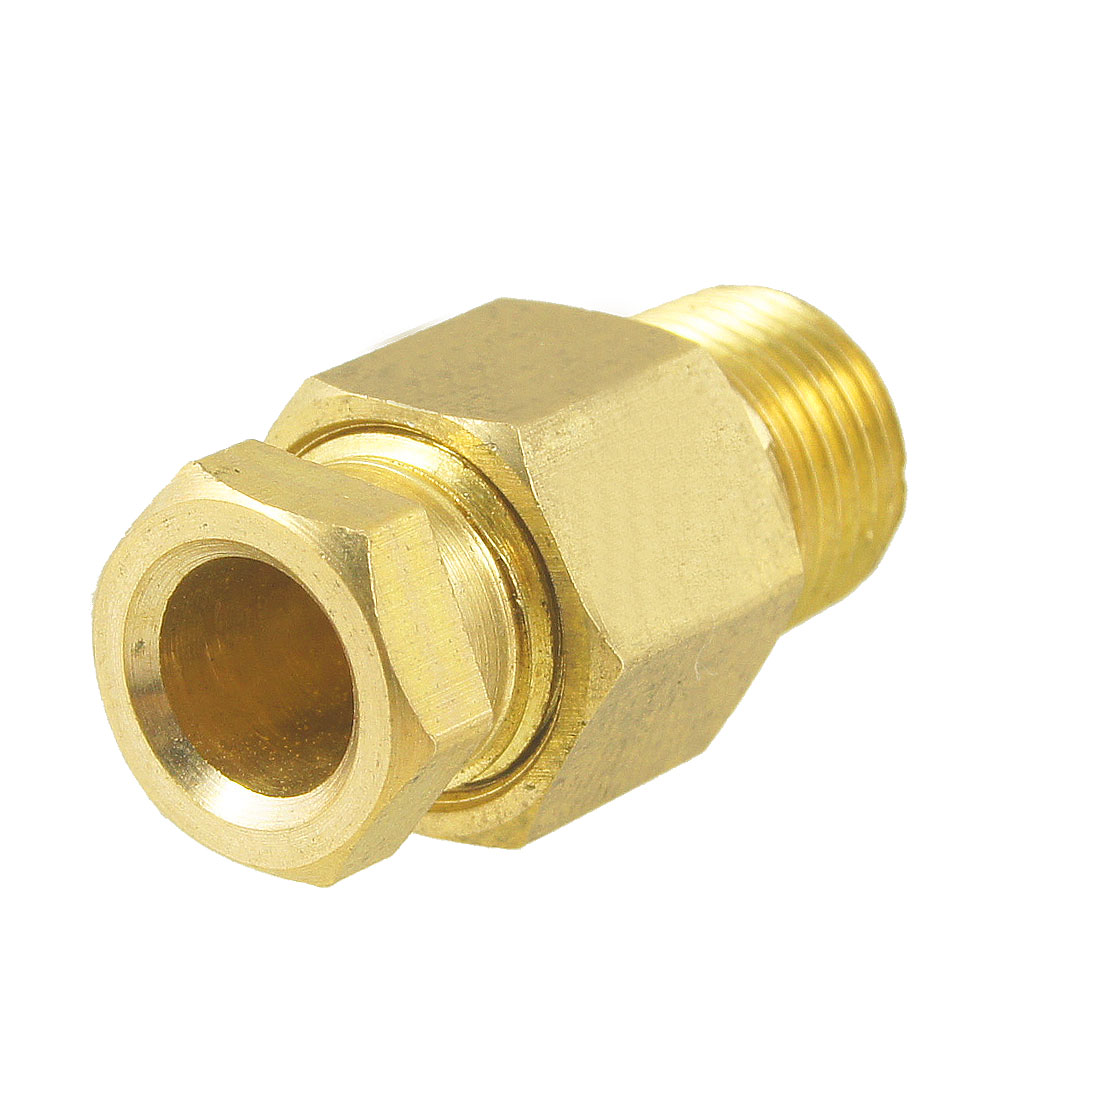 "6mm Hole Dia 1/8"" Male Thread Metal Straight Hydraulic Grease Nipple Fitting"